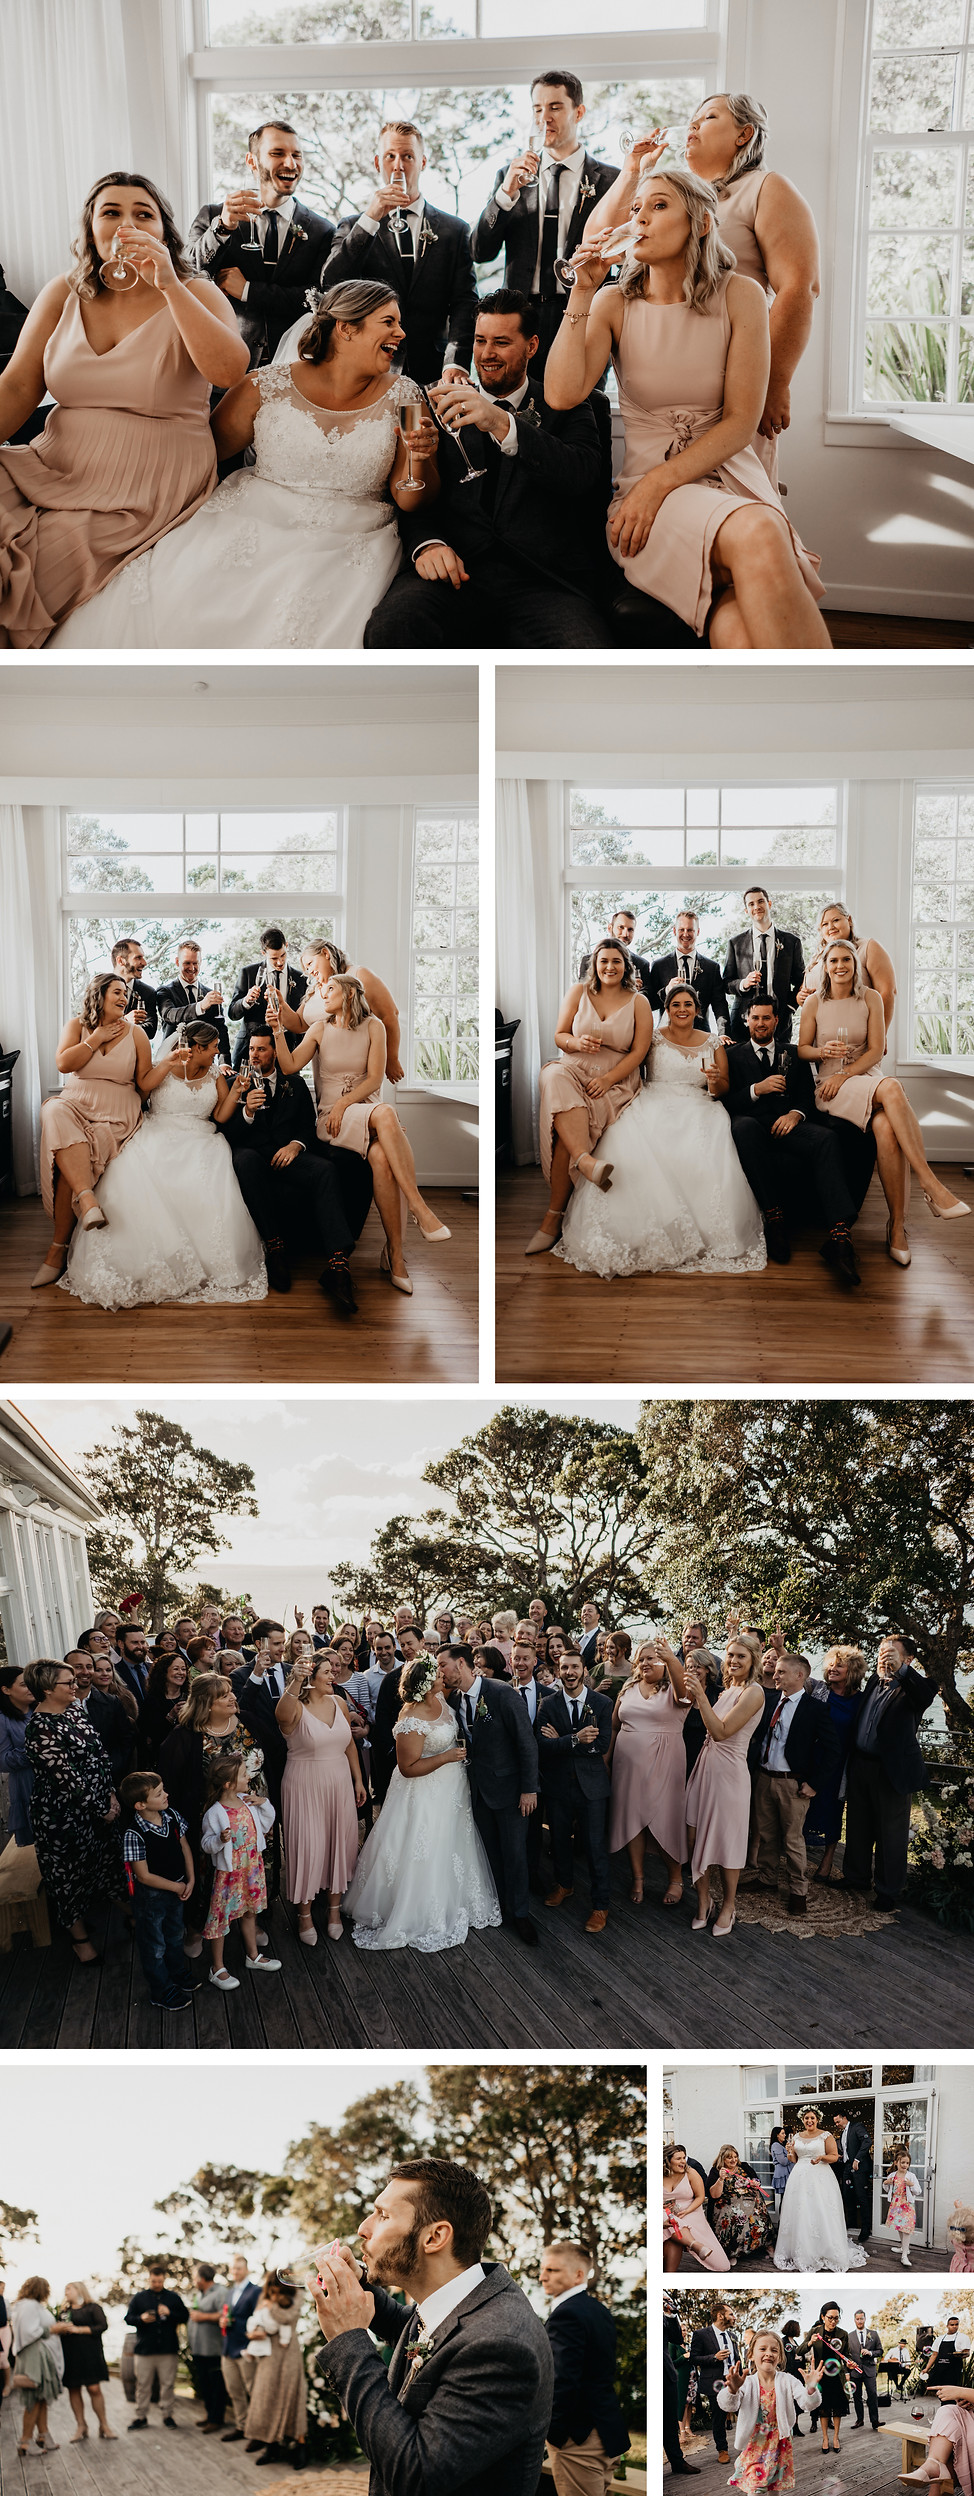 wedding at the officers mess in narrow neck beach, auckland new zealand, group photos, bubbles at wedding